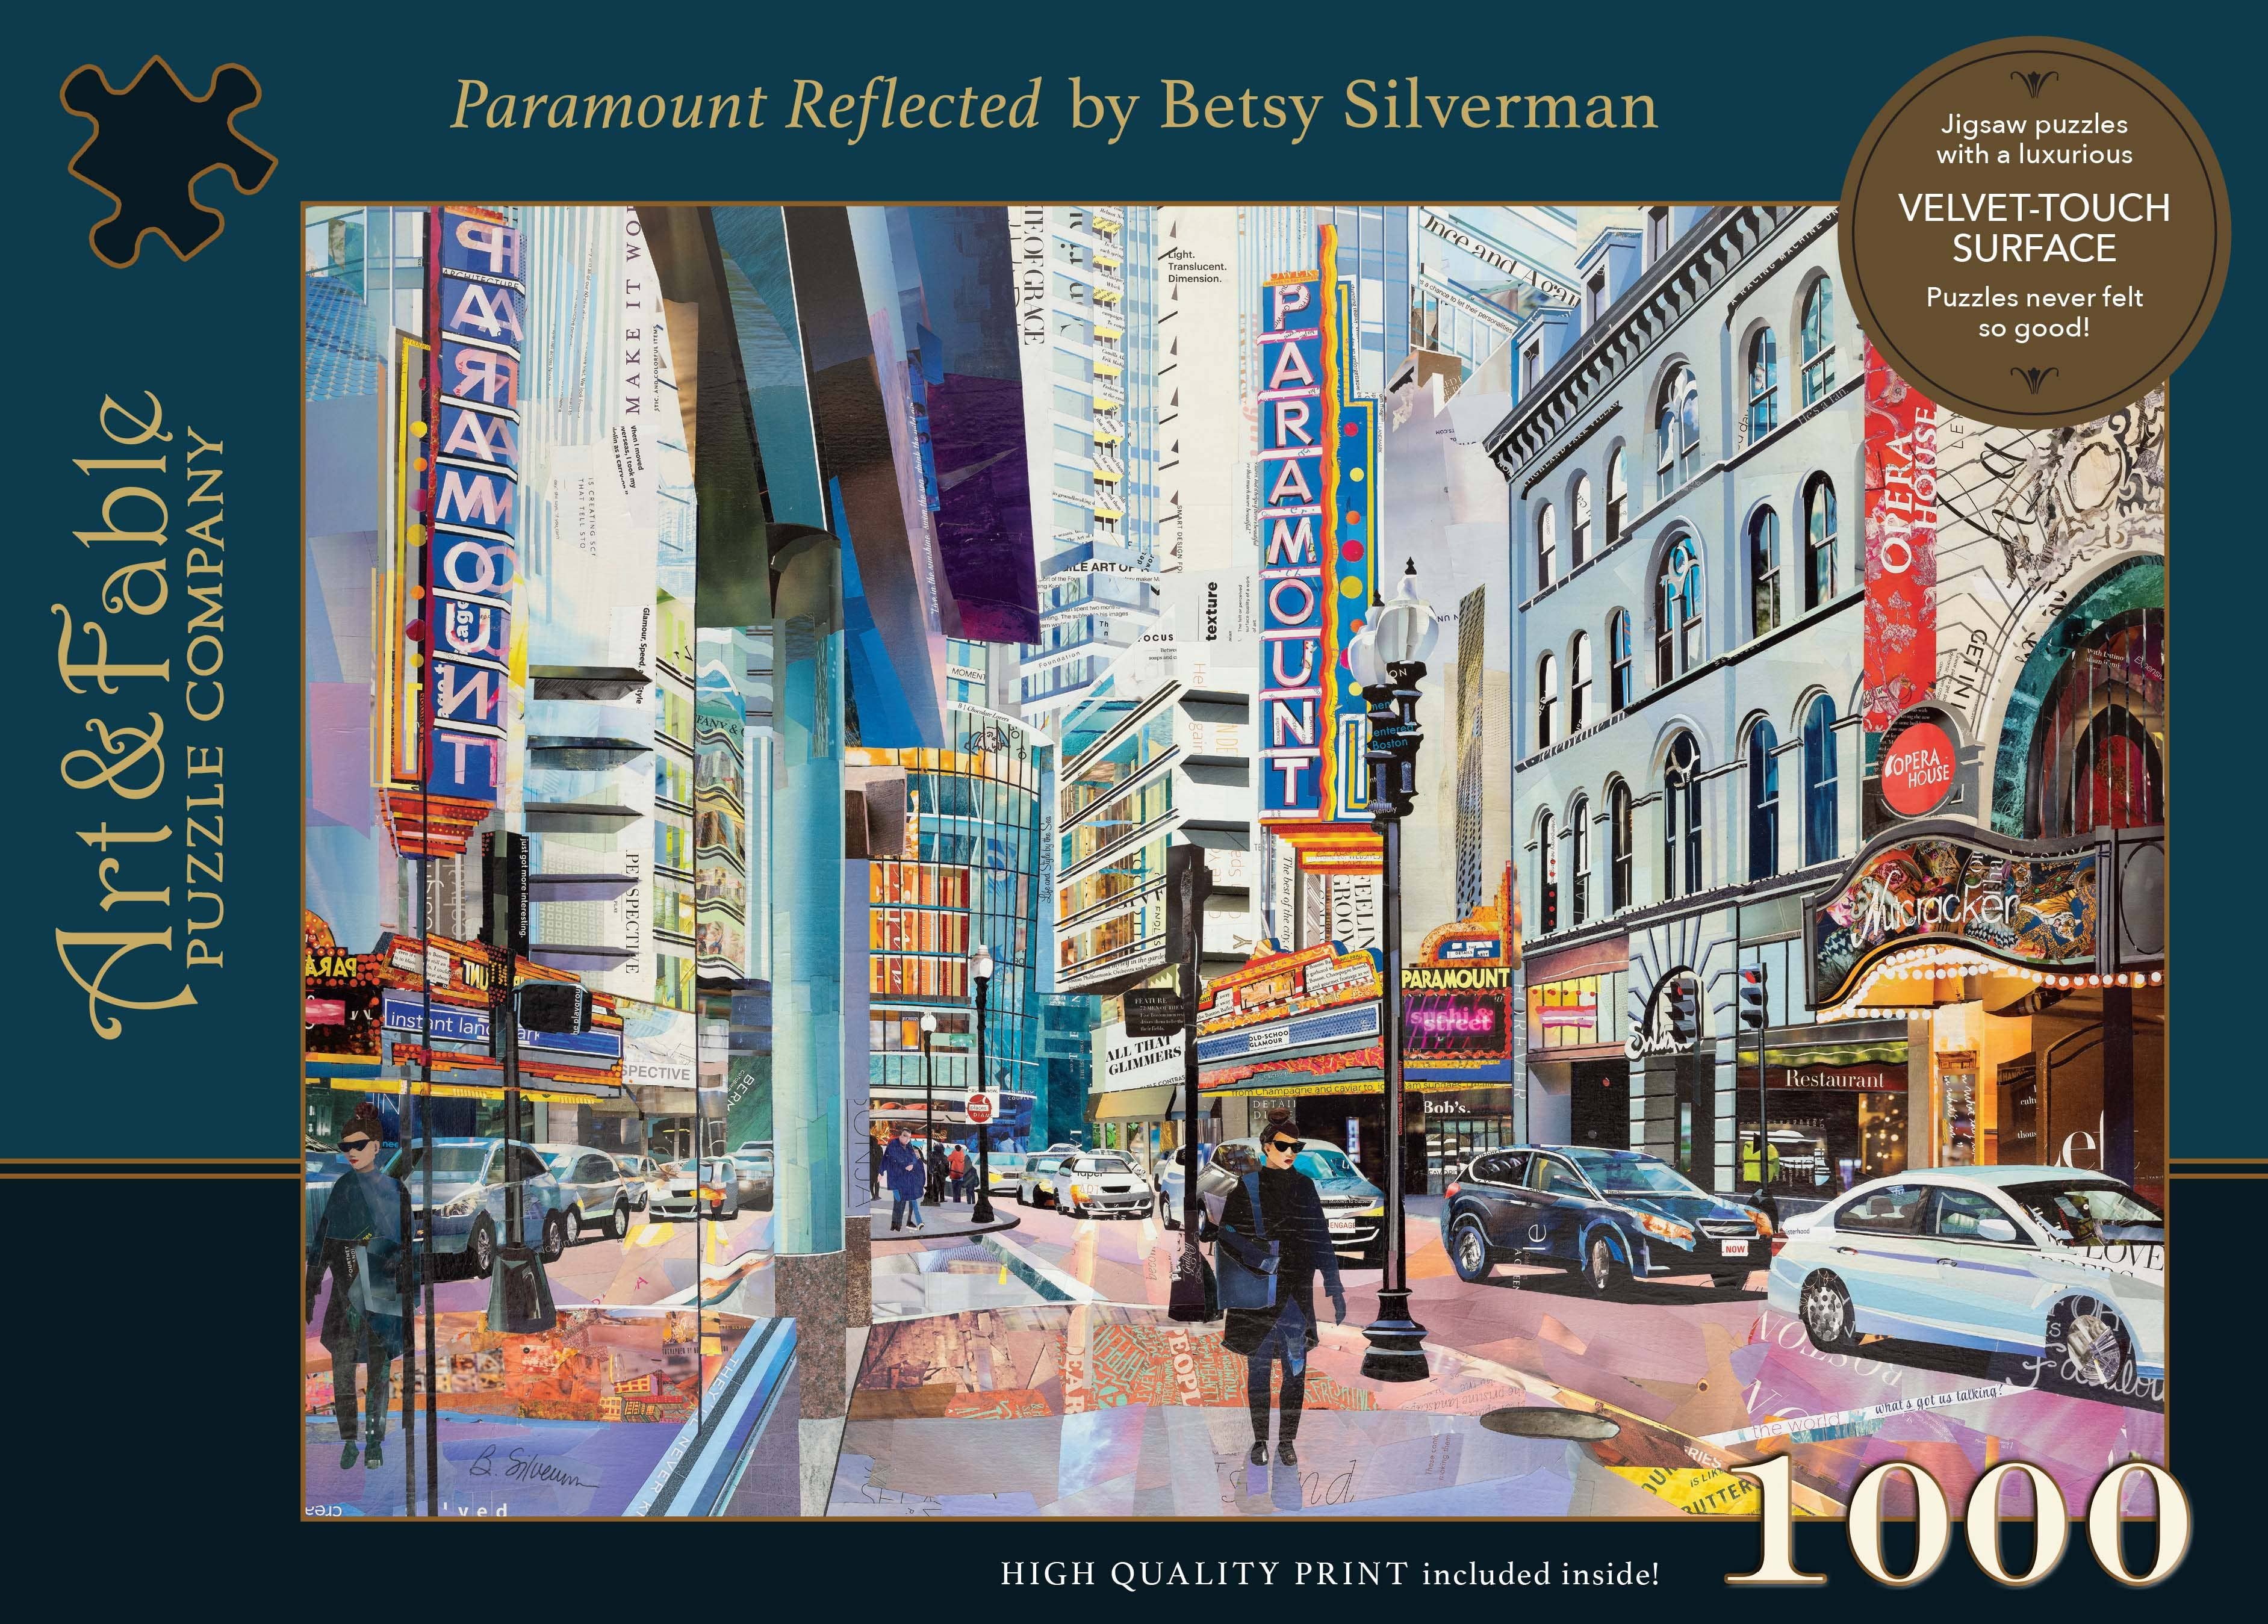 Paramount Reflected, 1000-pc Velvet-Touch Jigsaw Puzzle featuring the artwork of Betsy Silverman | Trada Marketplace